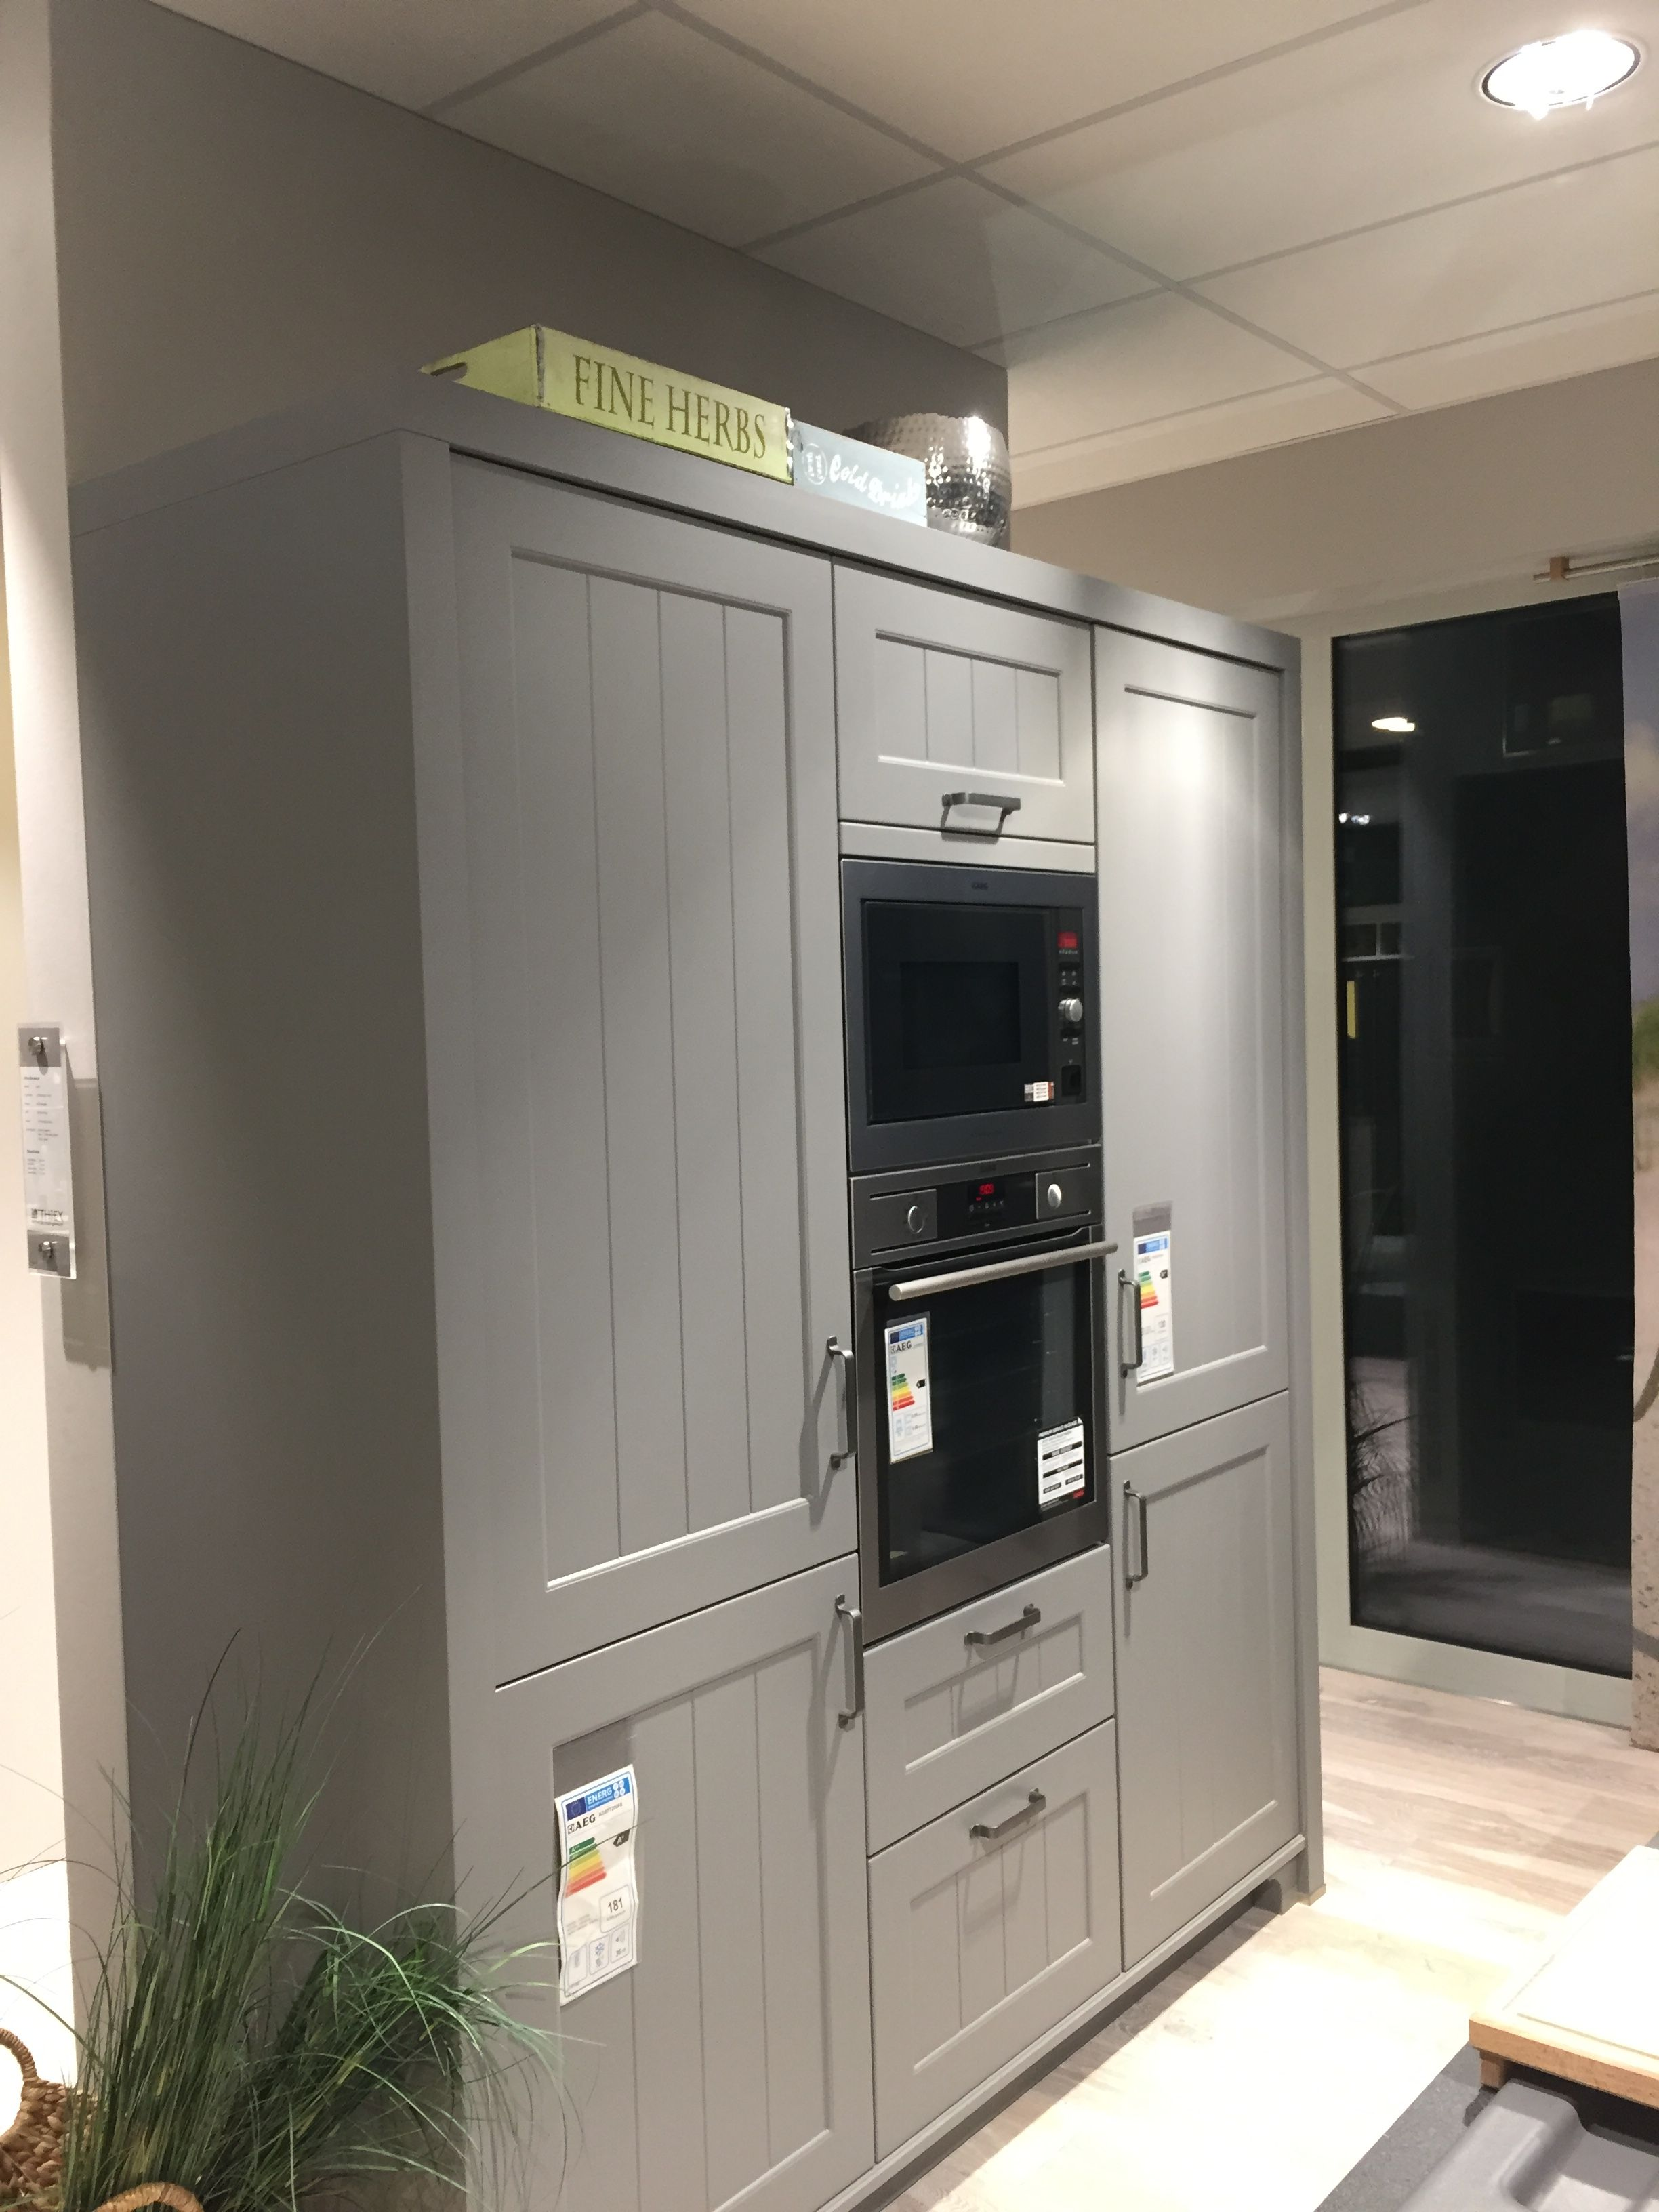 Schuller Canto Grey Rural Kitchen Bought At Thiex In Geichlingen